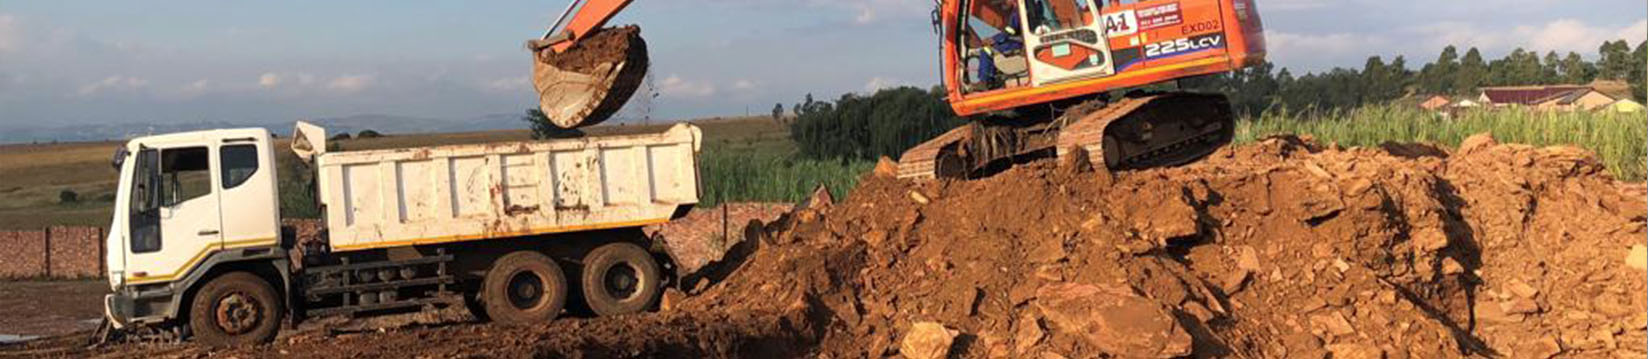 Site clearance contractors johannesburg